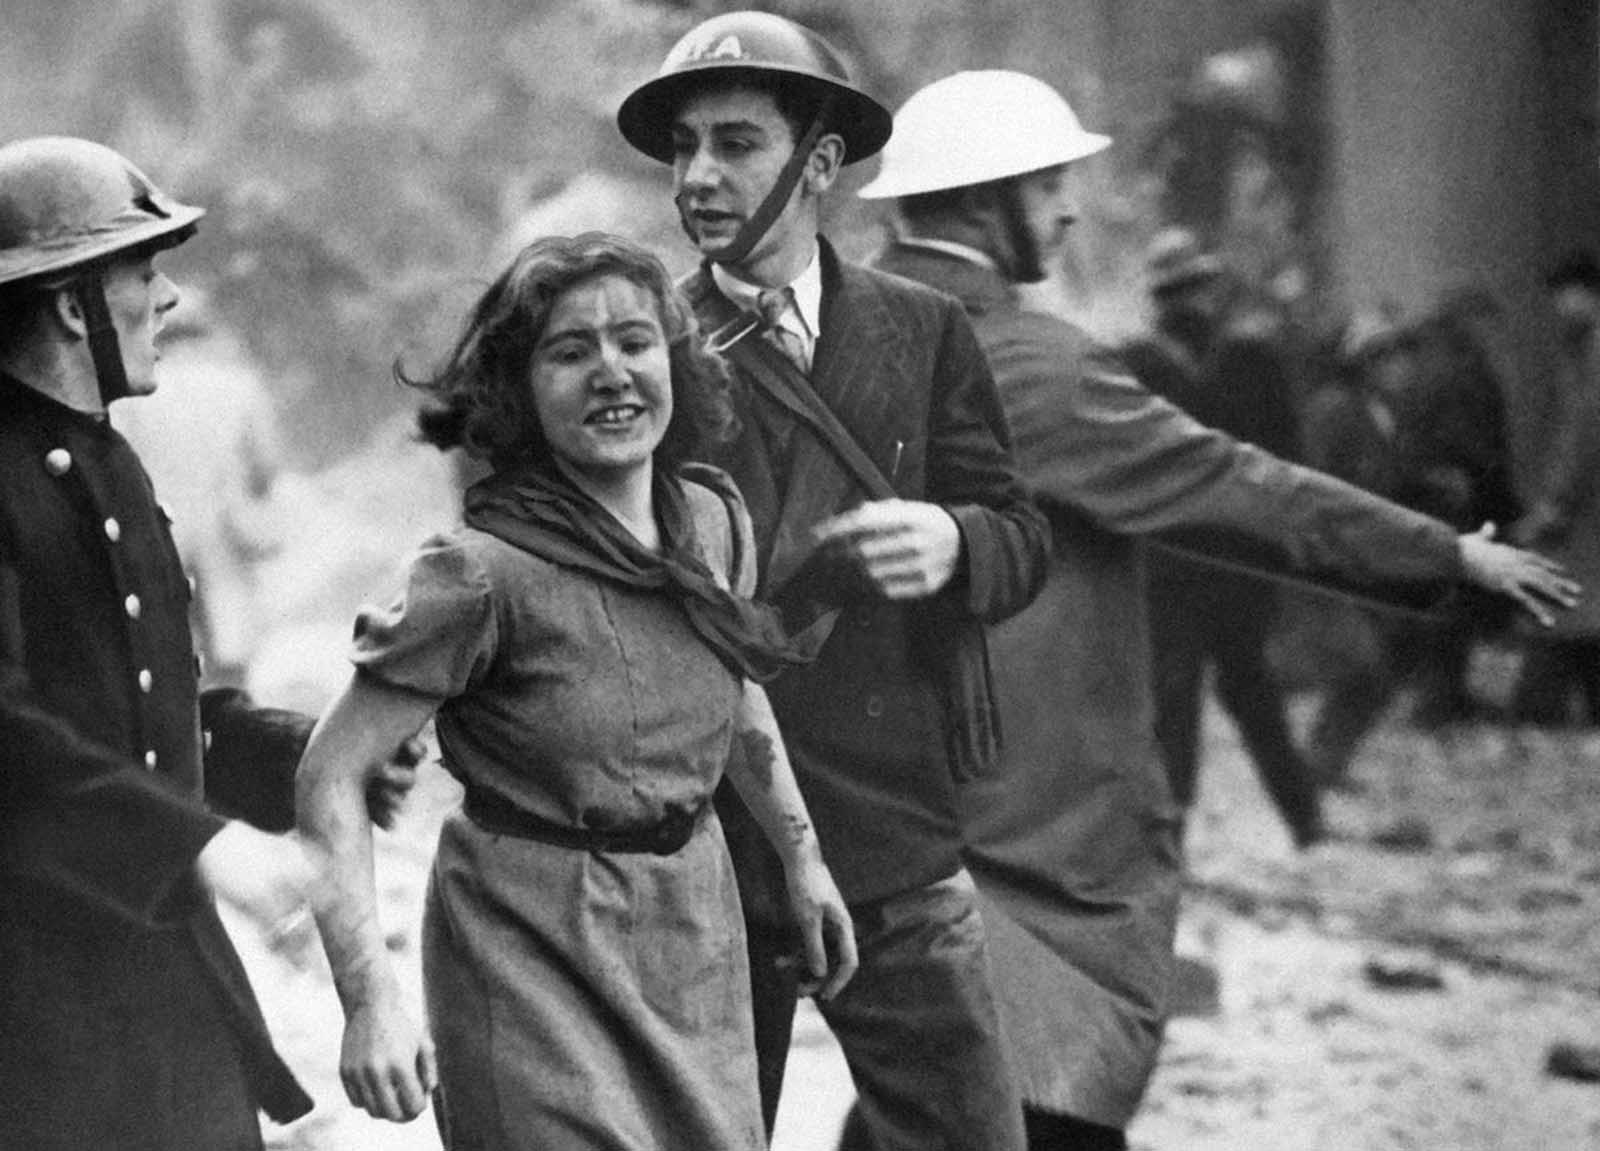 This smiling girl, dirtied but apparently not injured, was assisted across a London street on October 23, 1940, after she was rescued from the debris of a building damaged by a bomb attack in a German daylight raid.